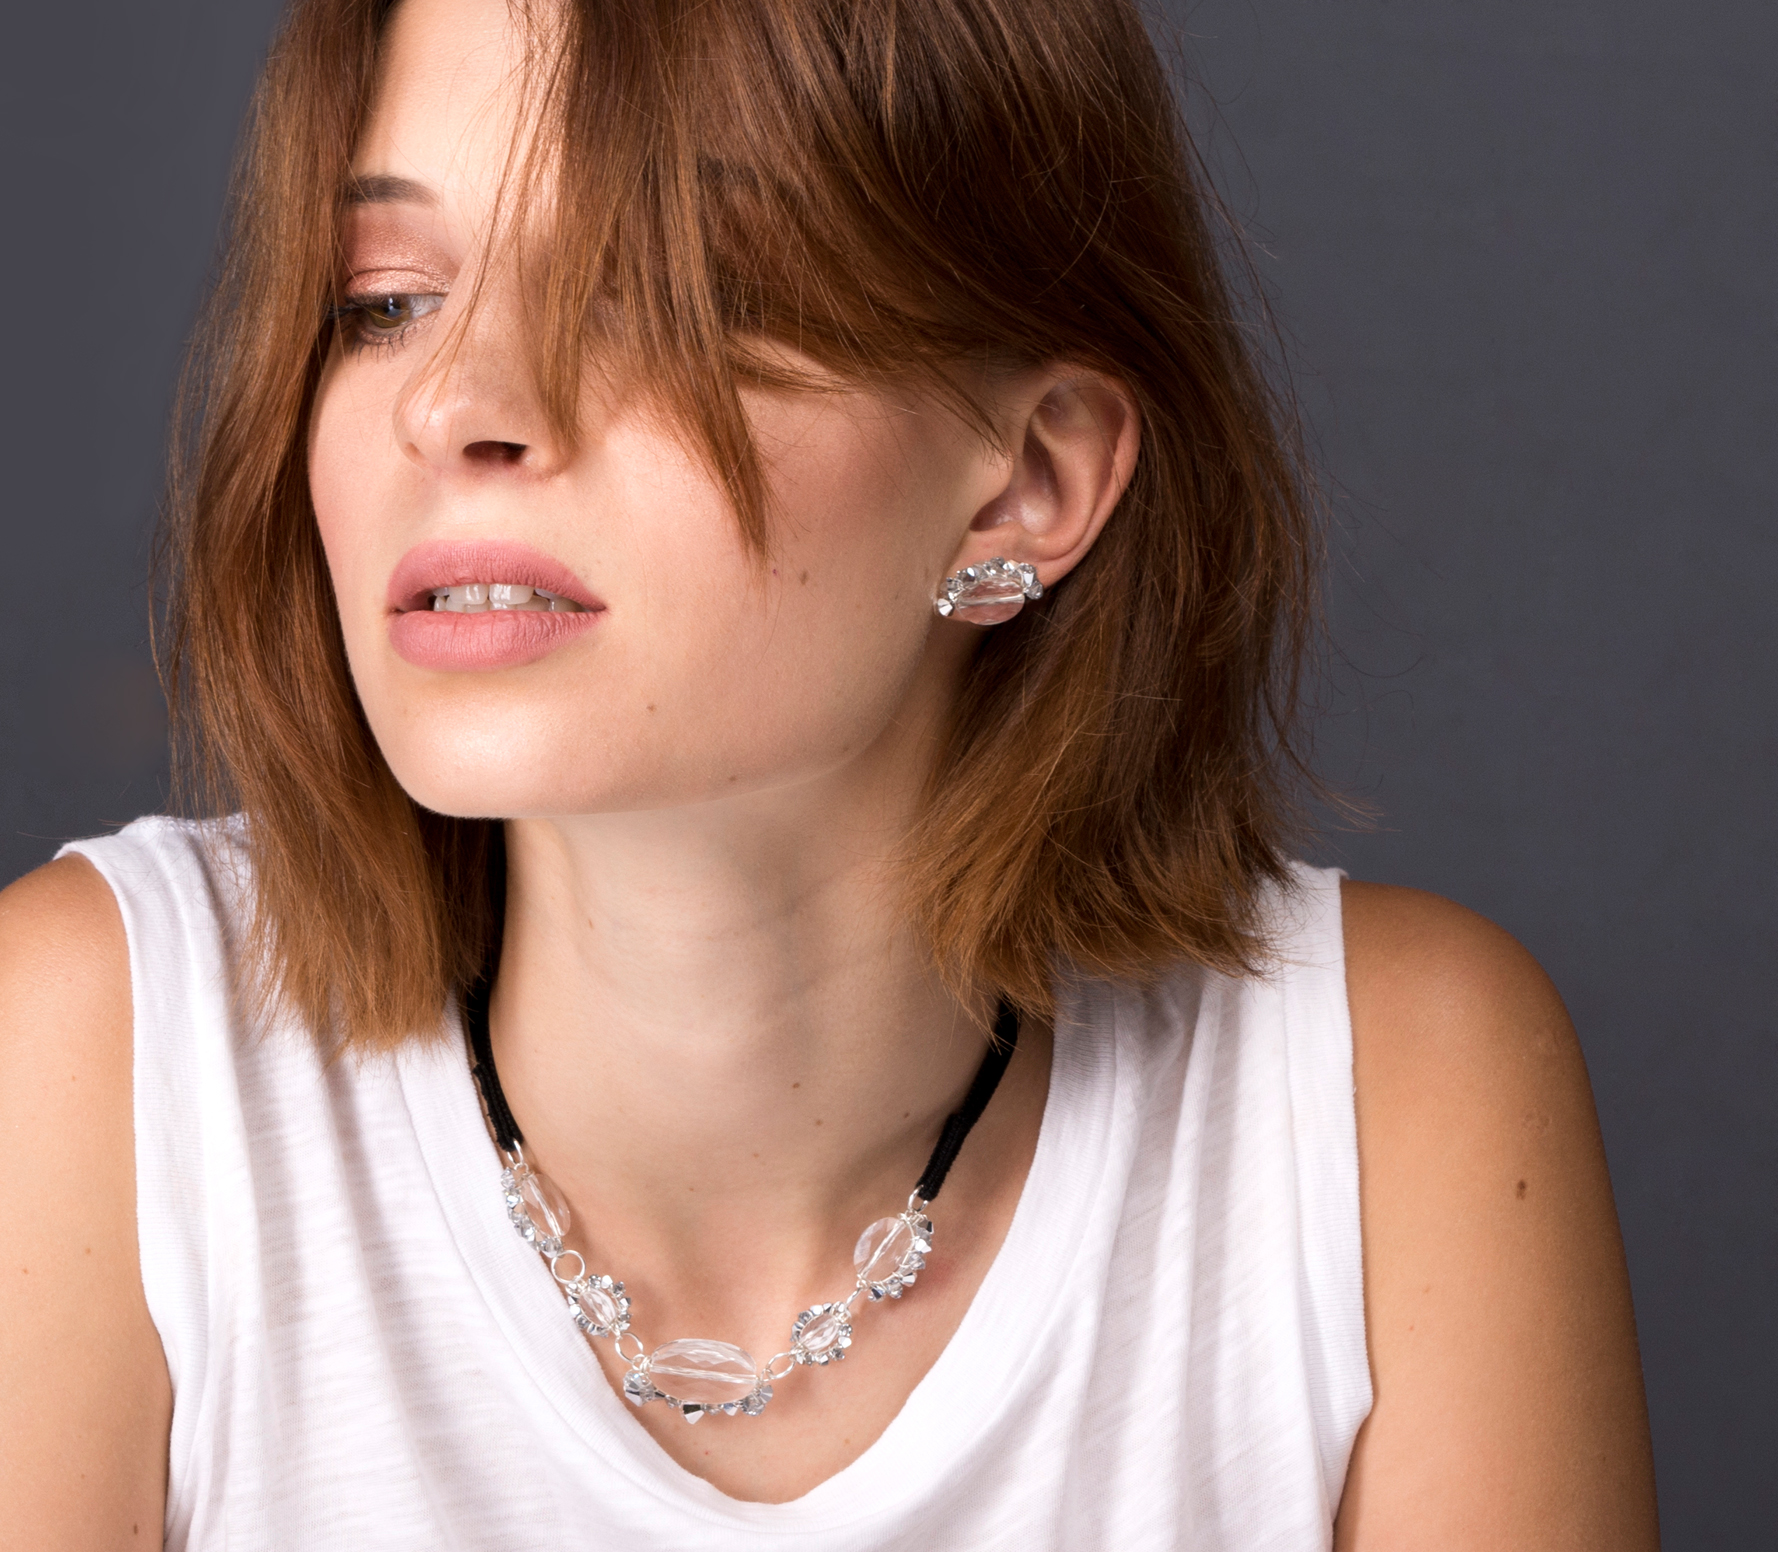 Desideri design silver necklace and earrings swarovski crystals 2.jpg